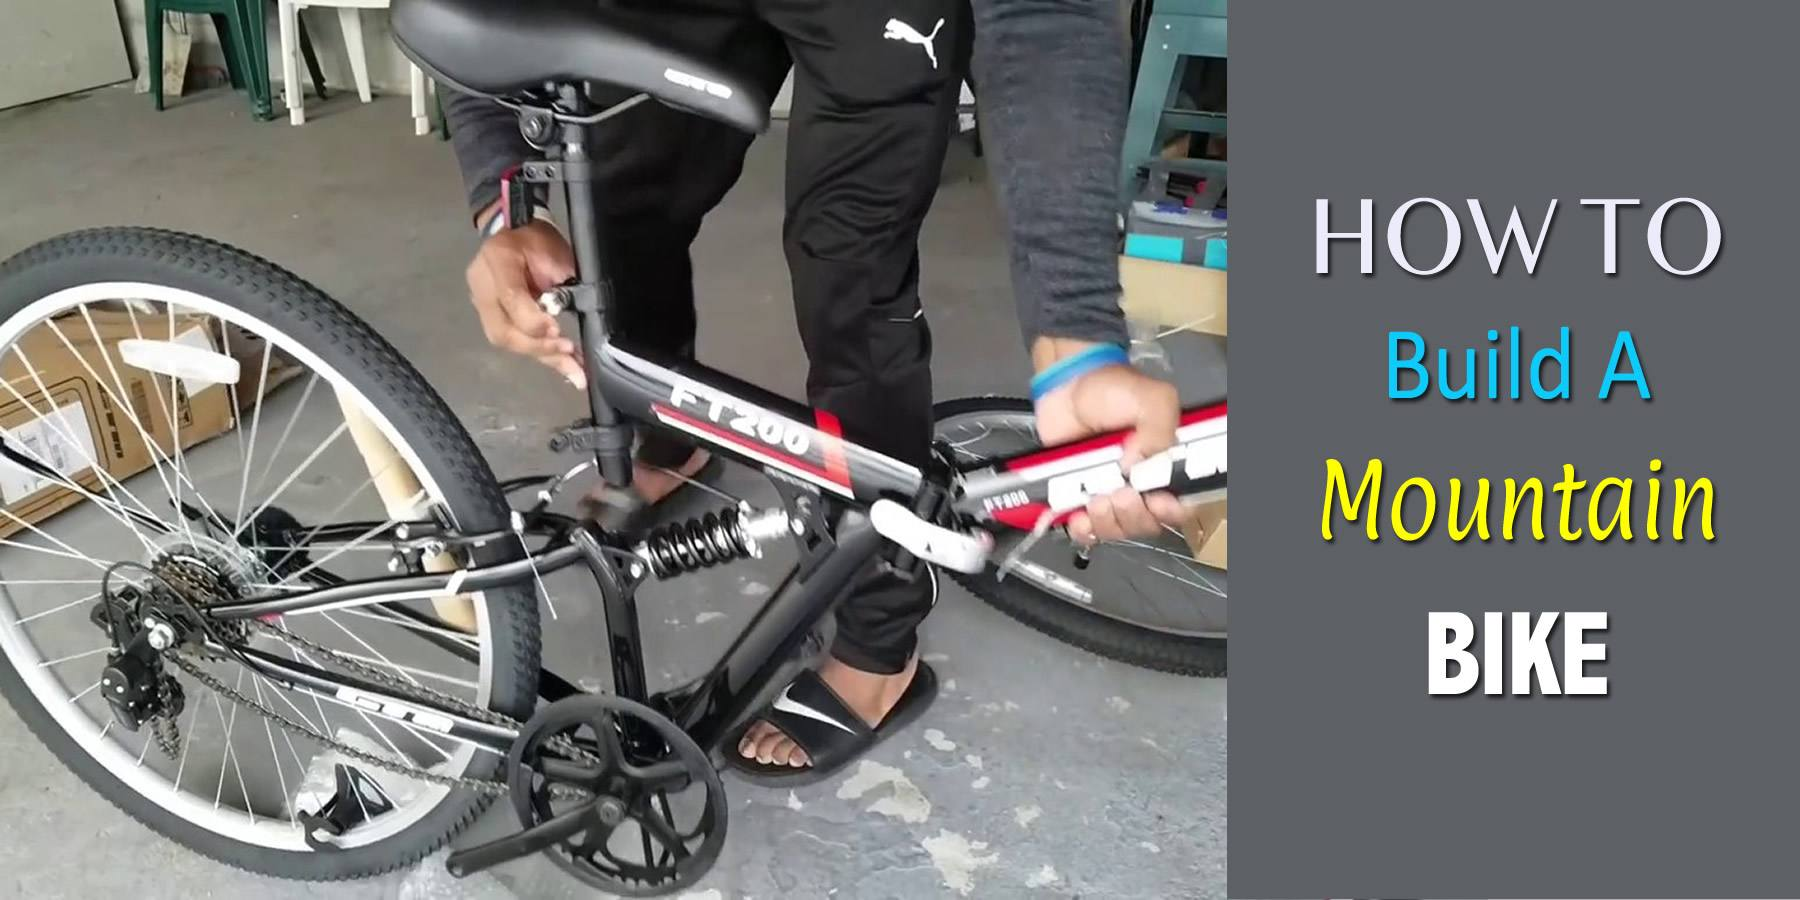 How To Build A Mountain Bike – Step By Step Guide By Expert!